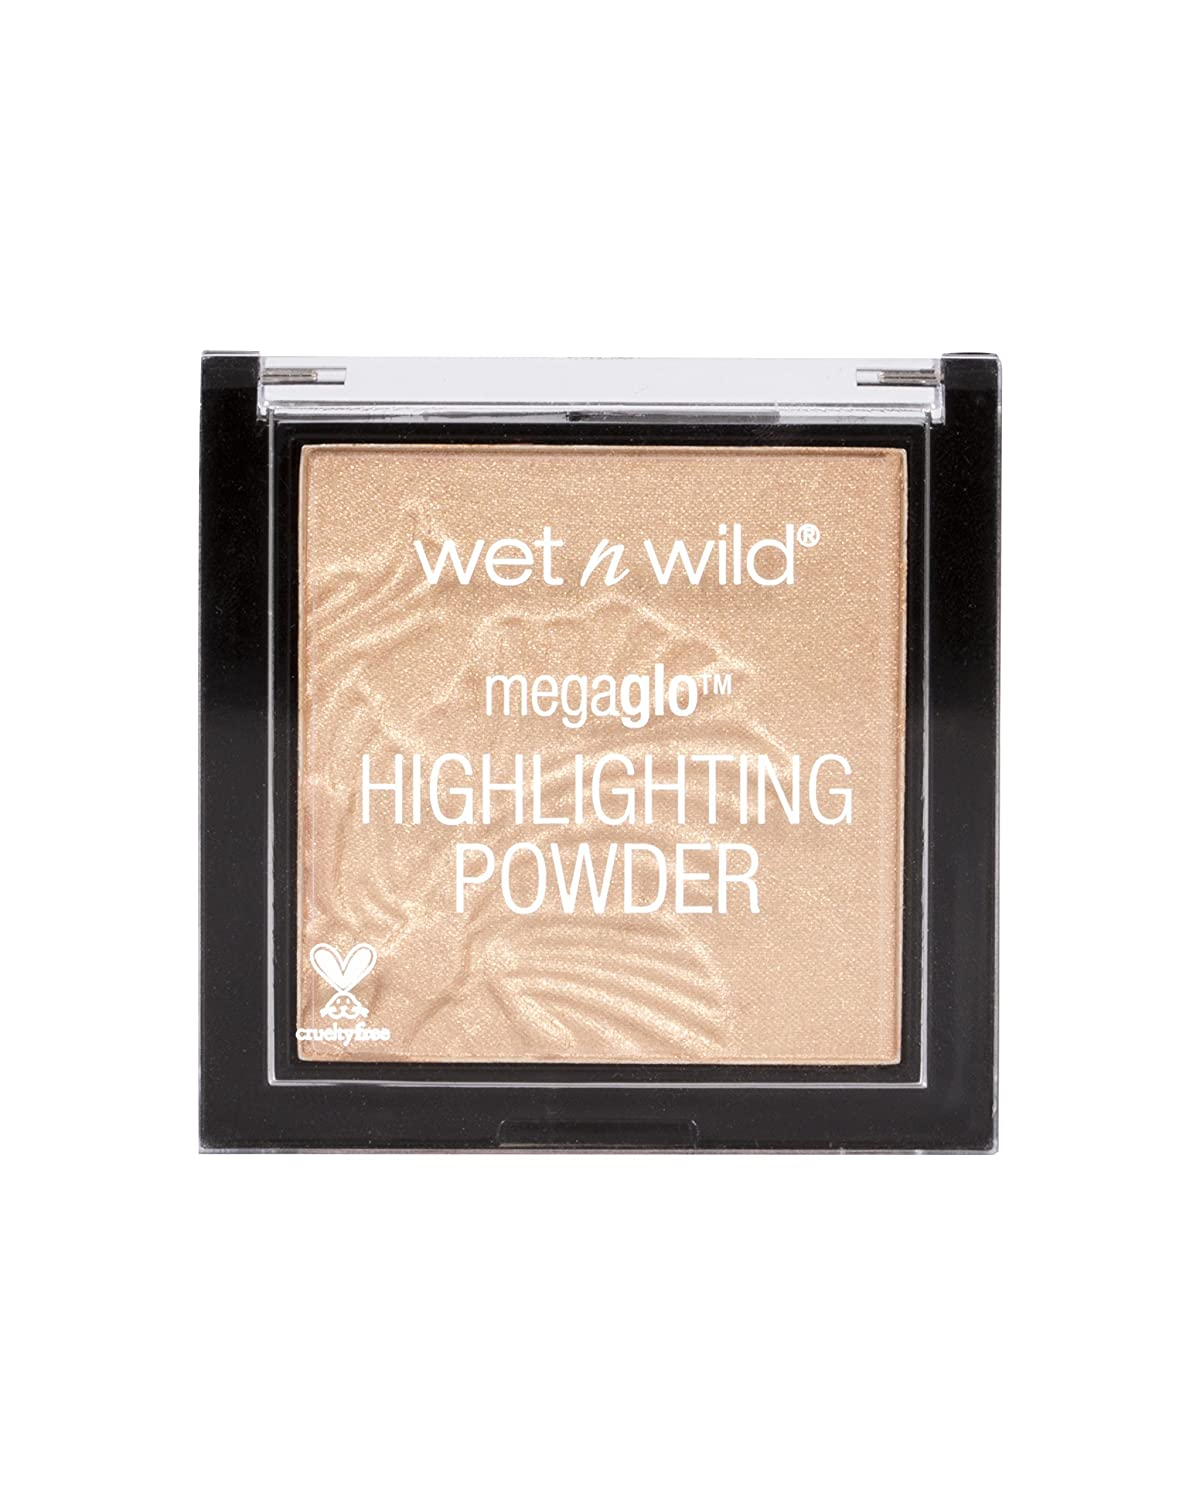 Wet n Wild Mega Glow Highlighter-5.4g, Crown of My Canopy Markwins Beauty Products